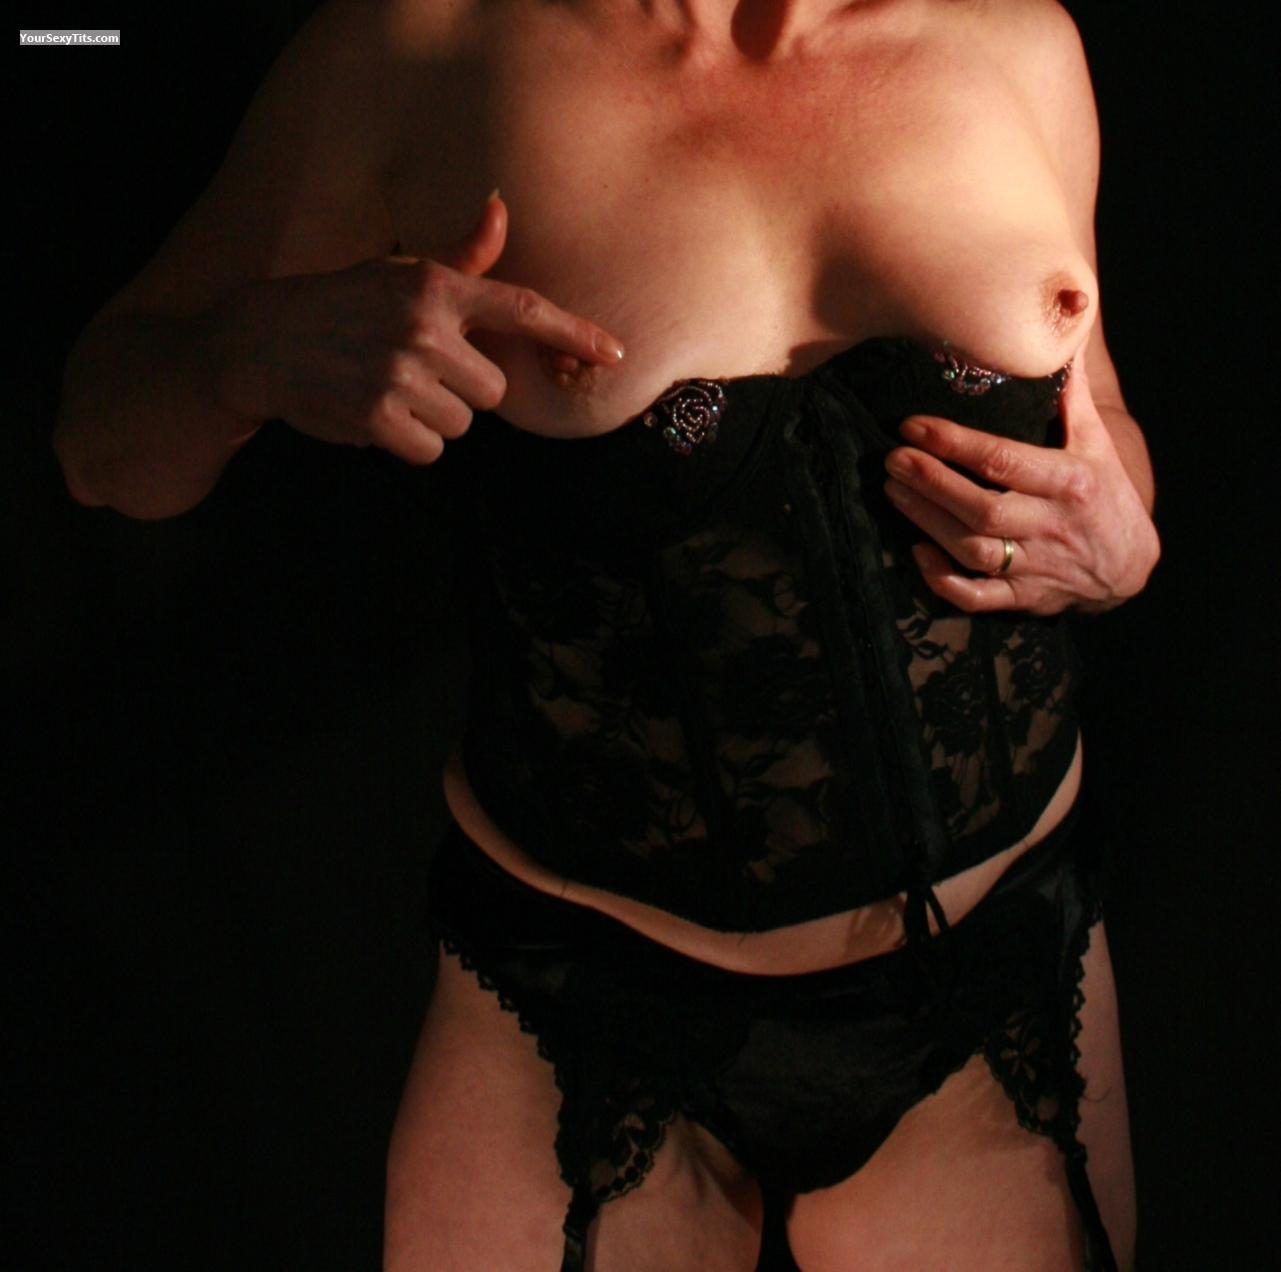 Tit Flash: Small Tits - Titty Mama from United States